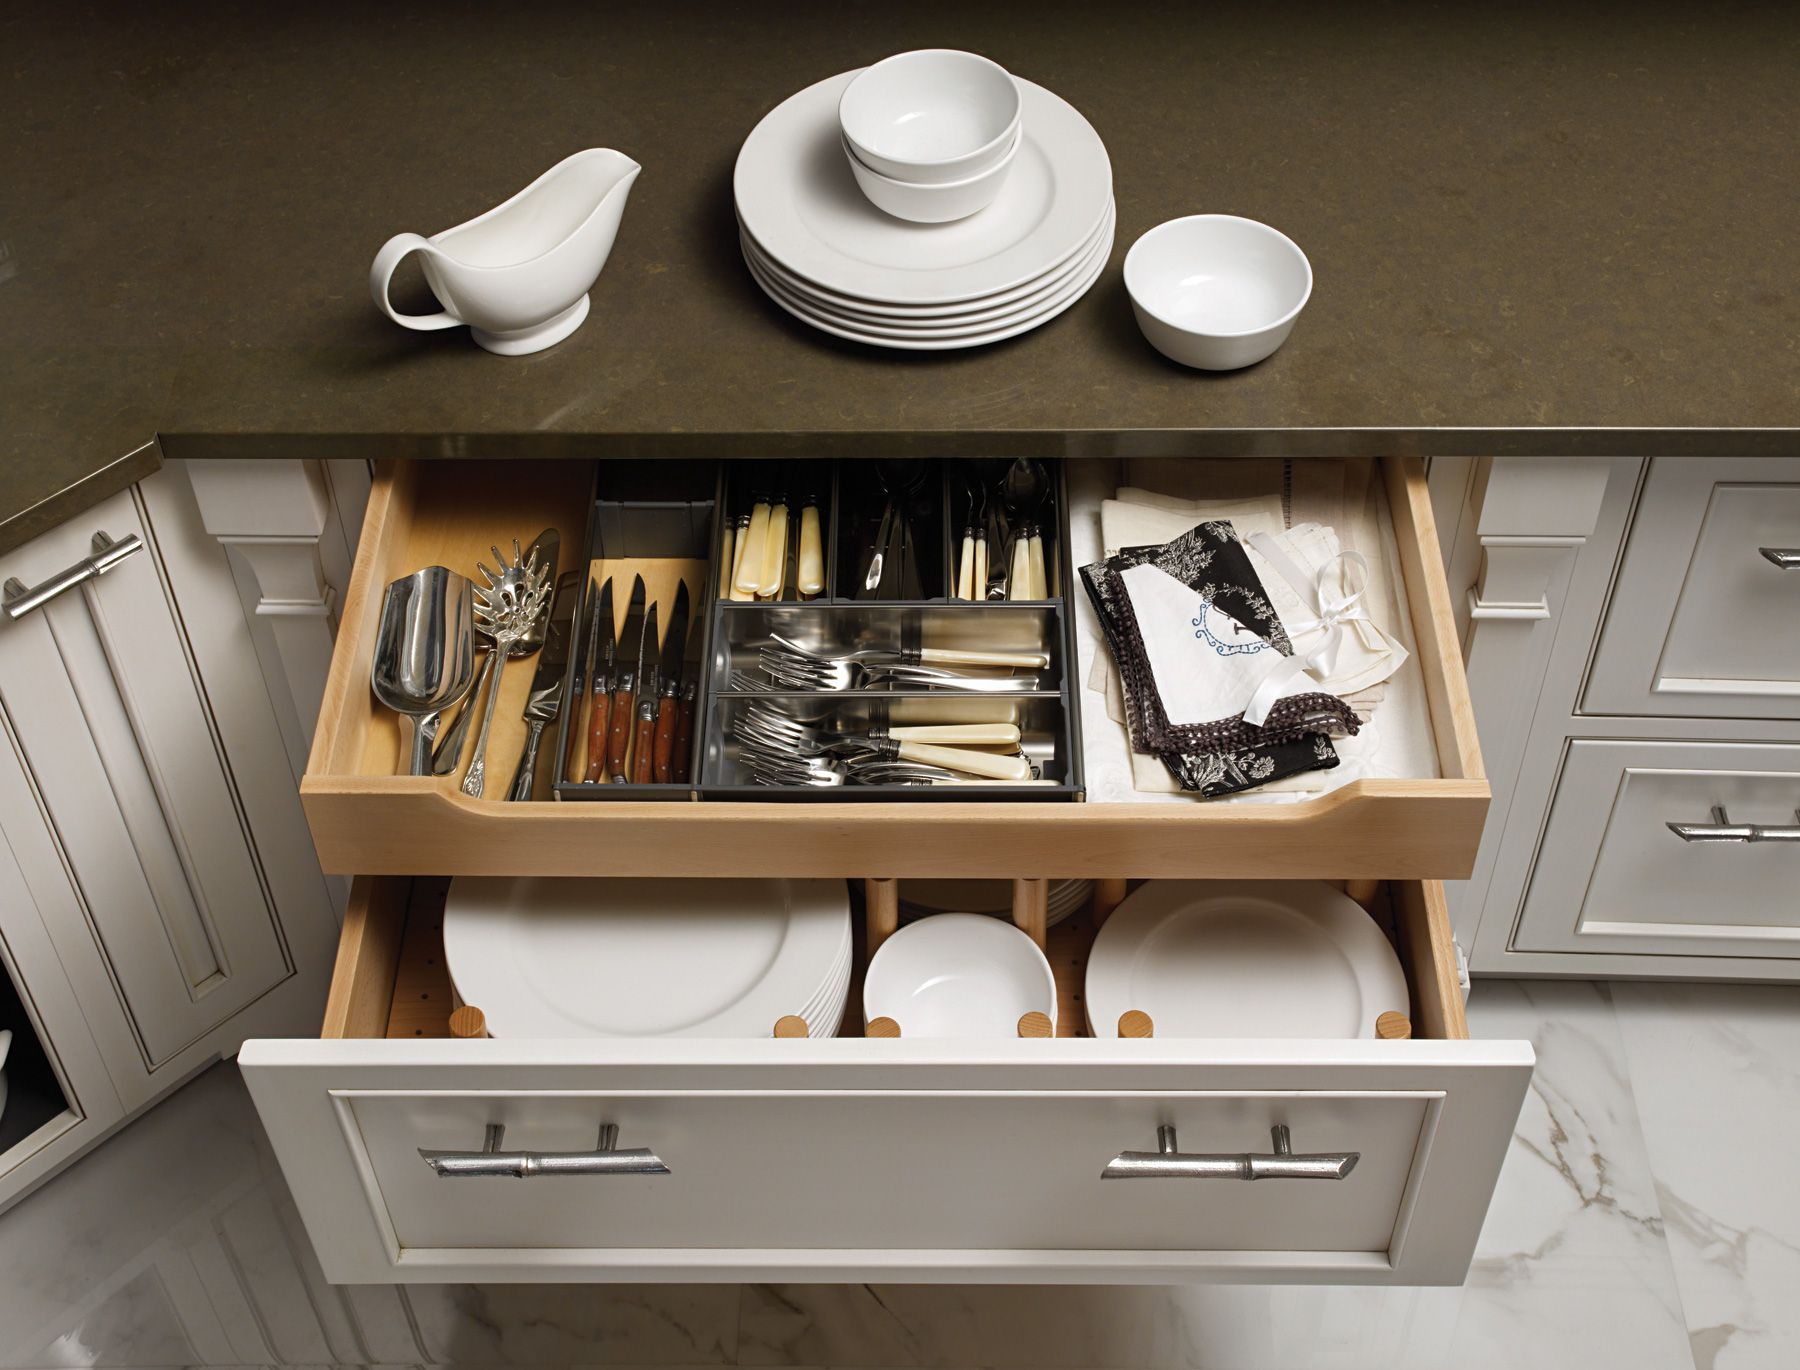 Kitchen Cabinet Drawer Organizers Clever Storage Behind A Deep Drawer Front Is Tucked A 4